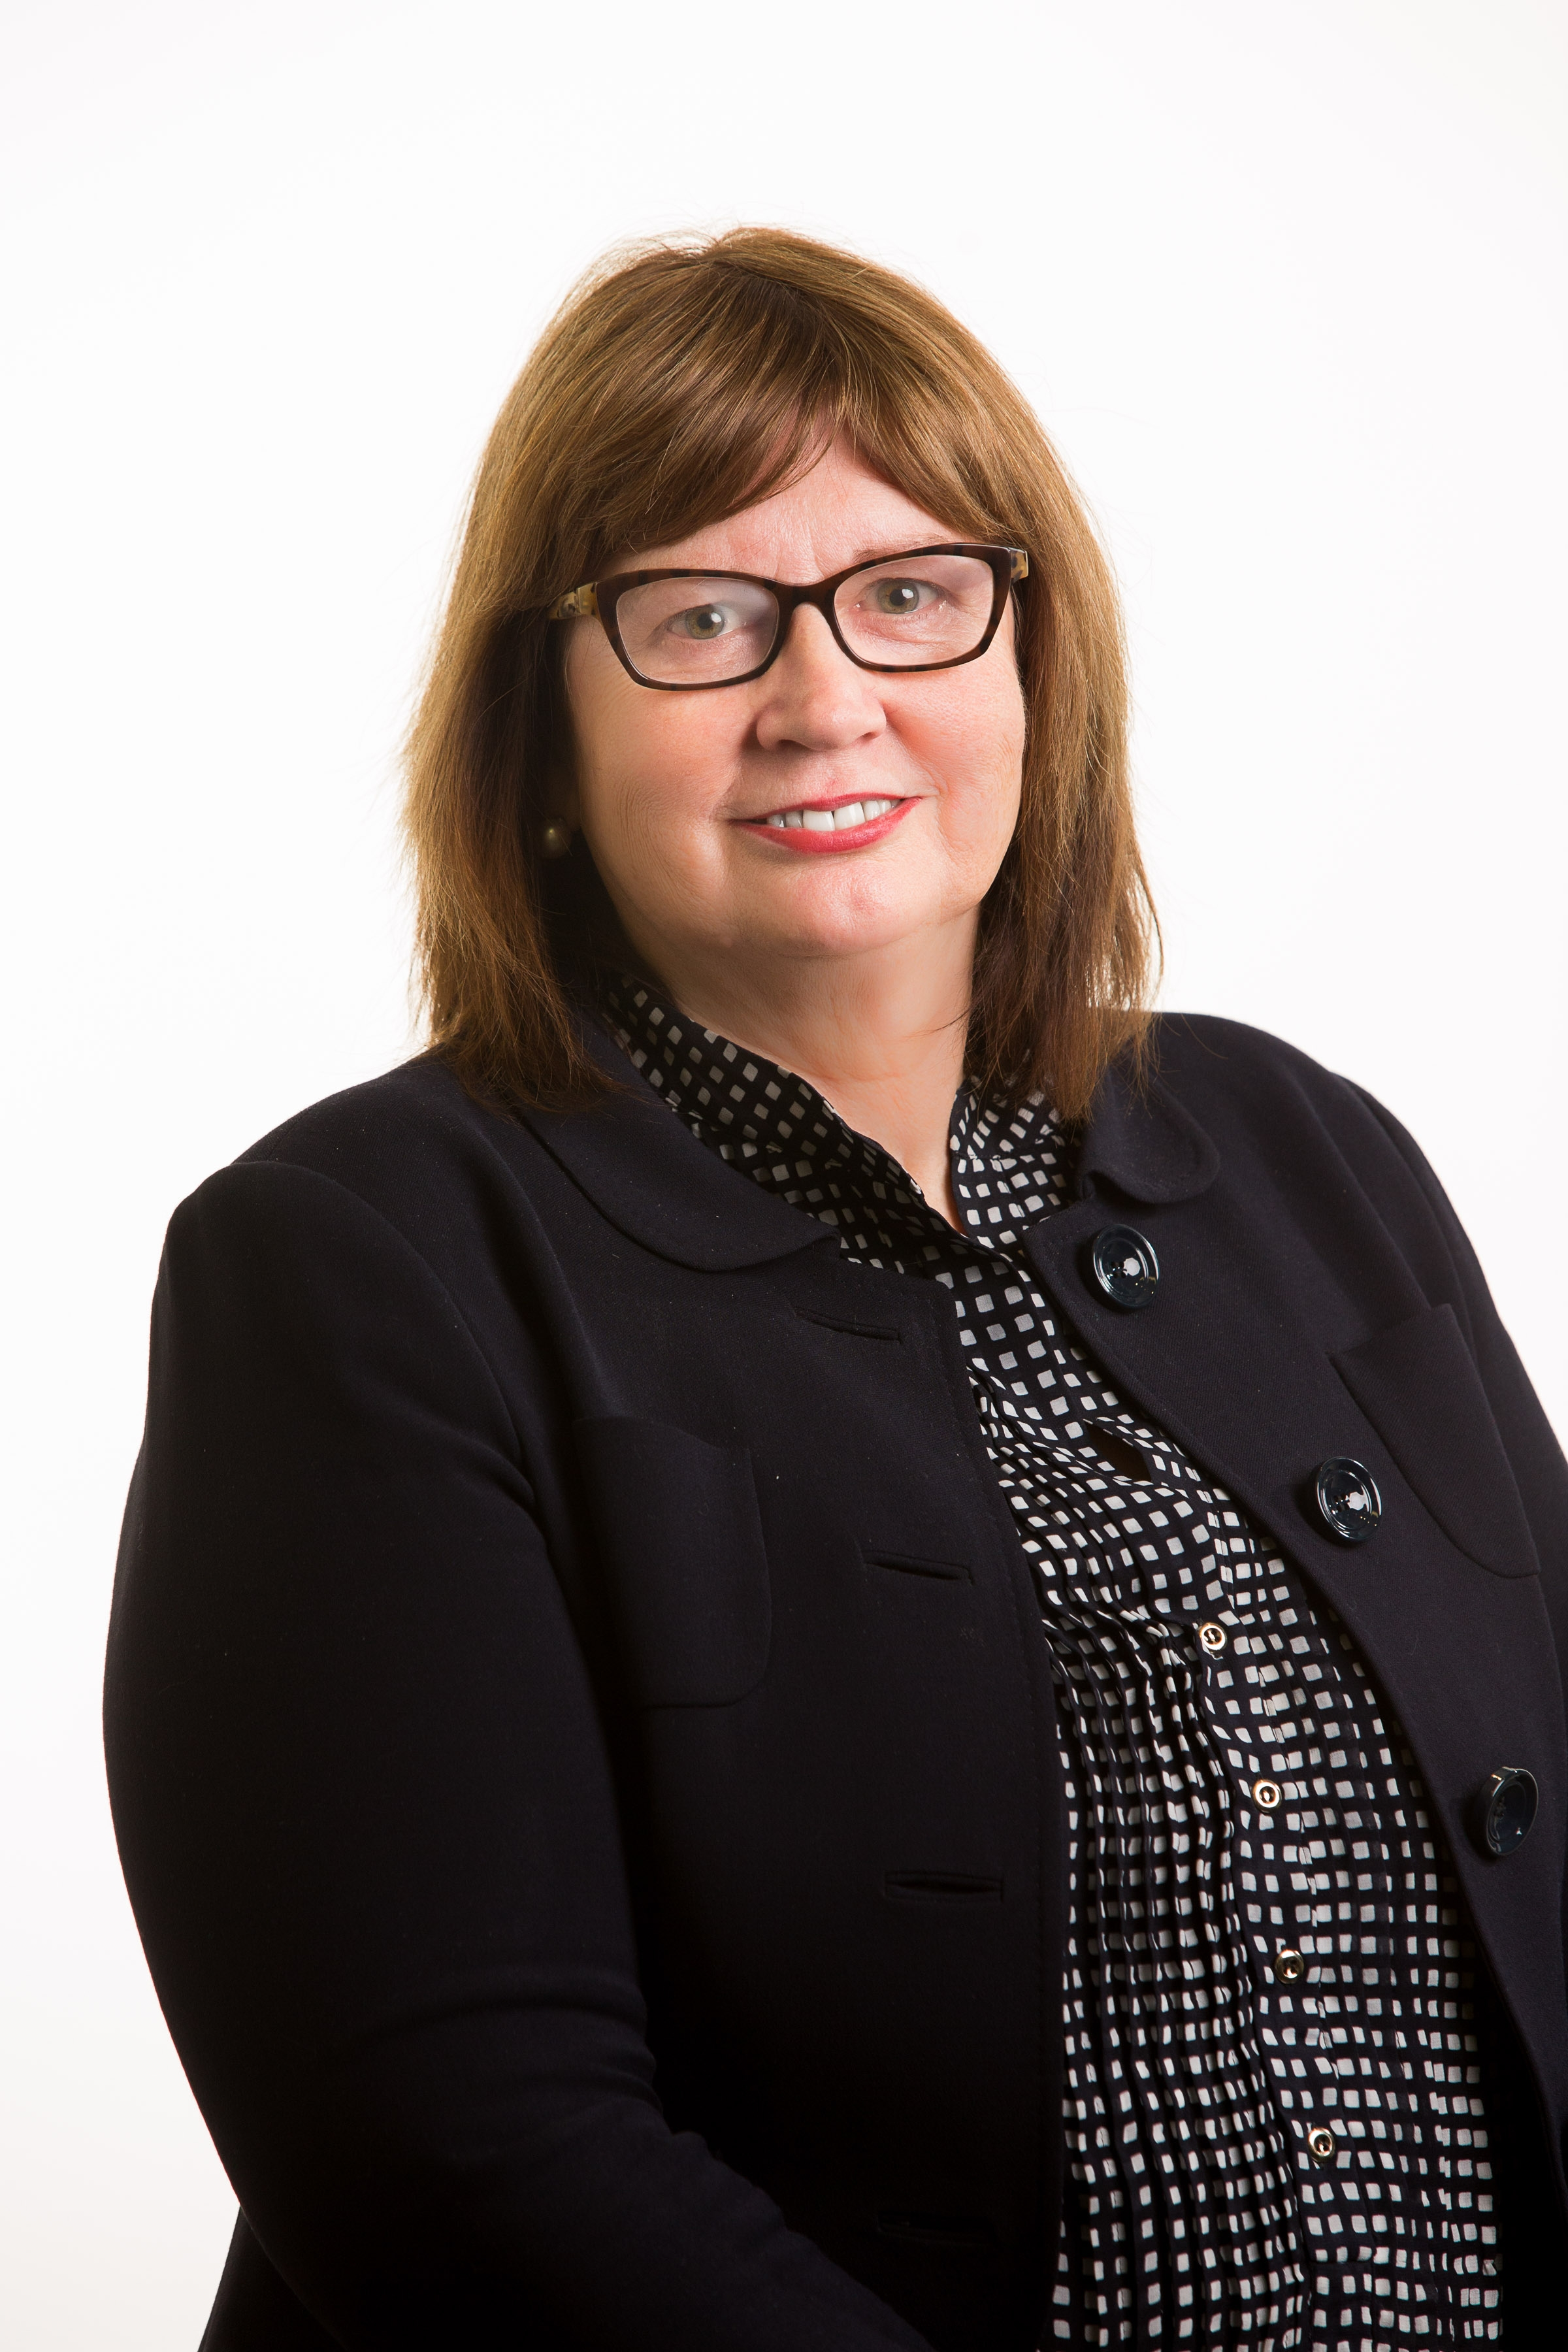 Monica Slavin MBBS, FRACP, MD - Head, Department of Infectious Disease Peter MacCallum Cancer InstituteHead, Immunocompromised Host Infection Service Royal Melbourne HospitalProfessor, Department of Medicine, University of Melbourne